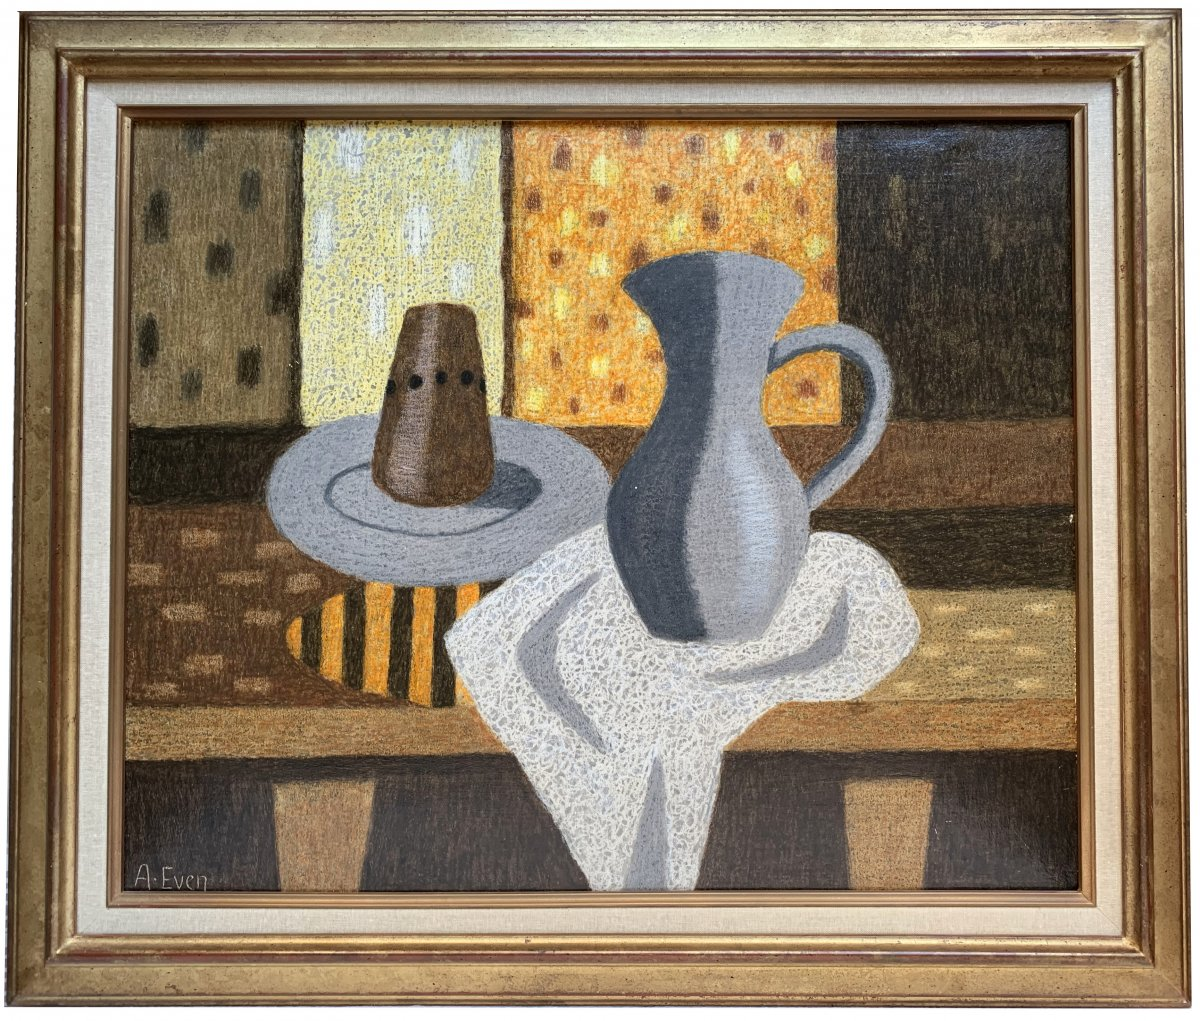 André Even (1918-1997) - Still Life With Pitcher - Signed Painting-photo-2